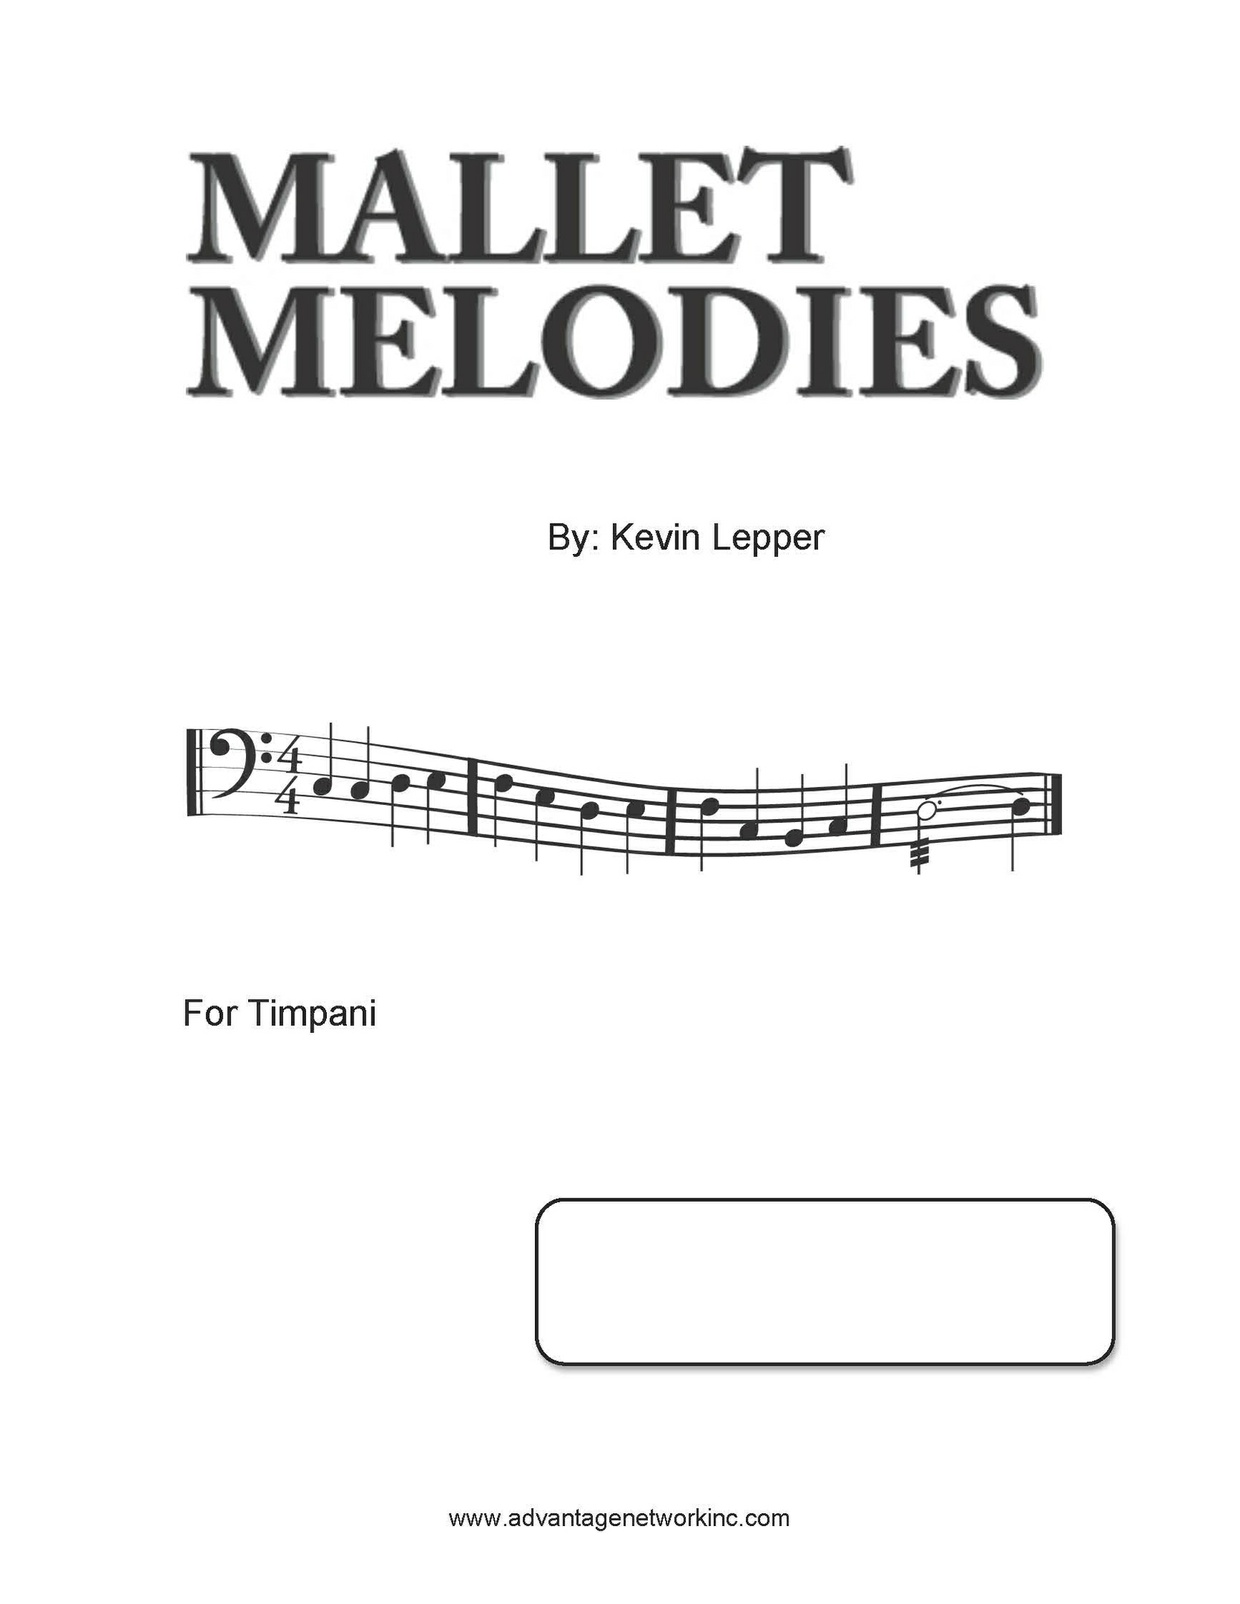 Mallet Melodies for Timpani